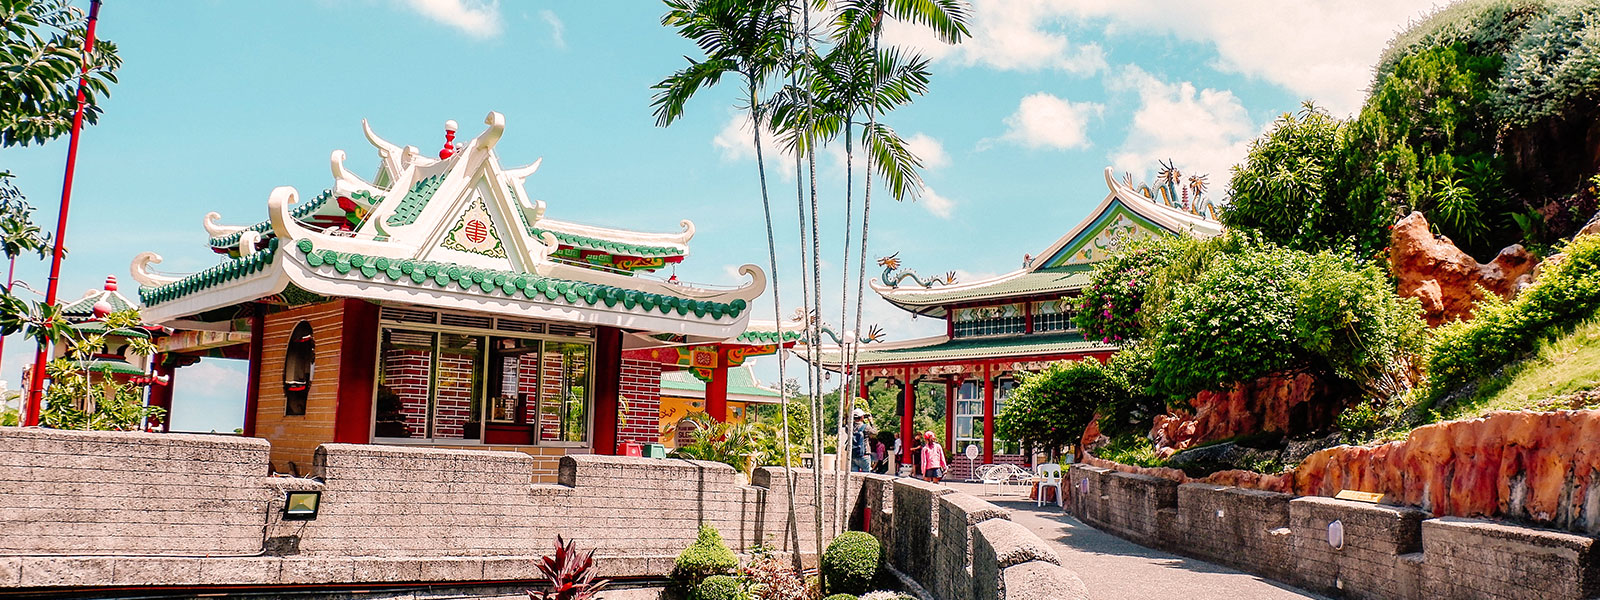 Temple in the Philippines